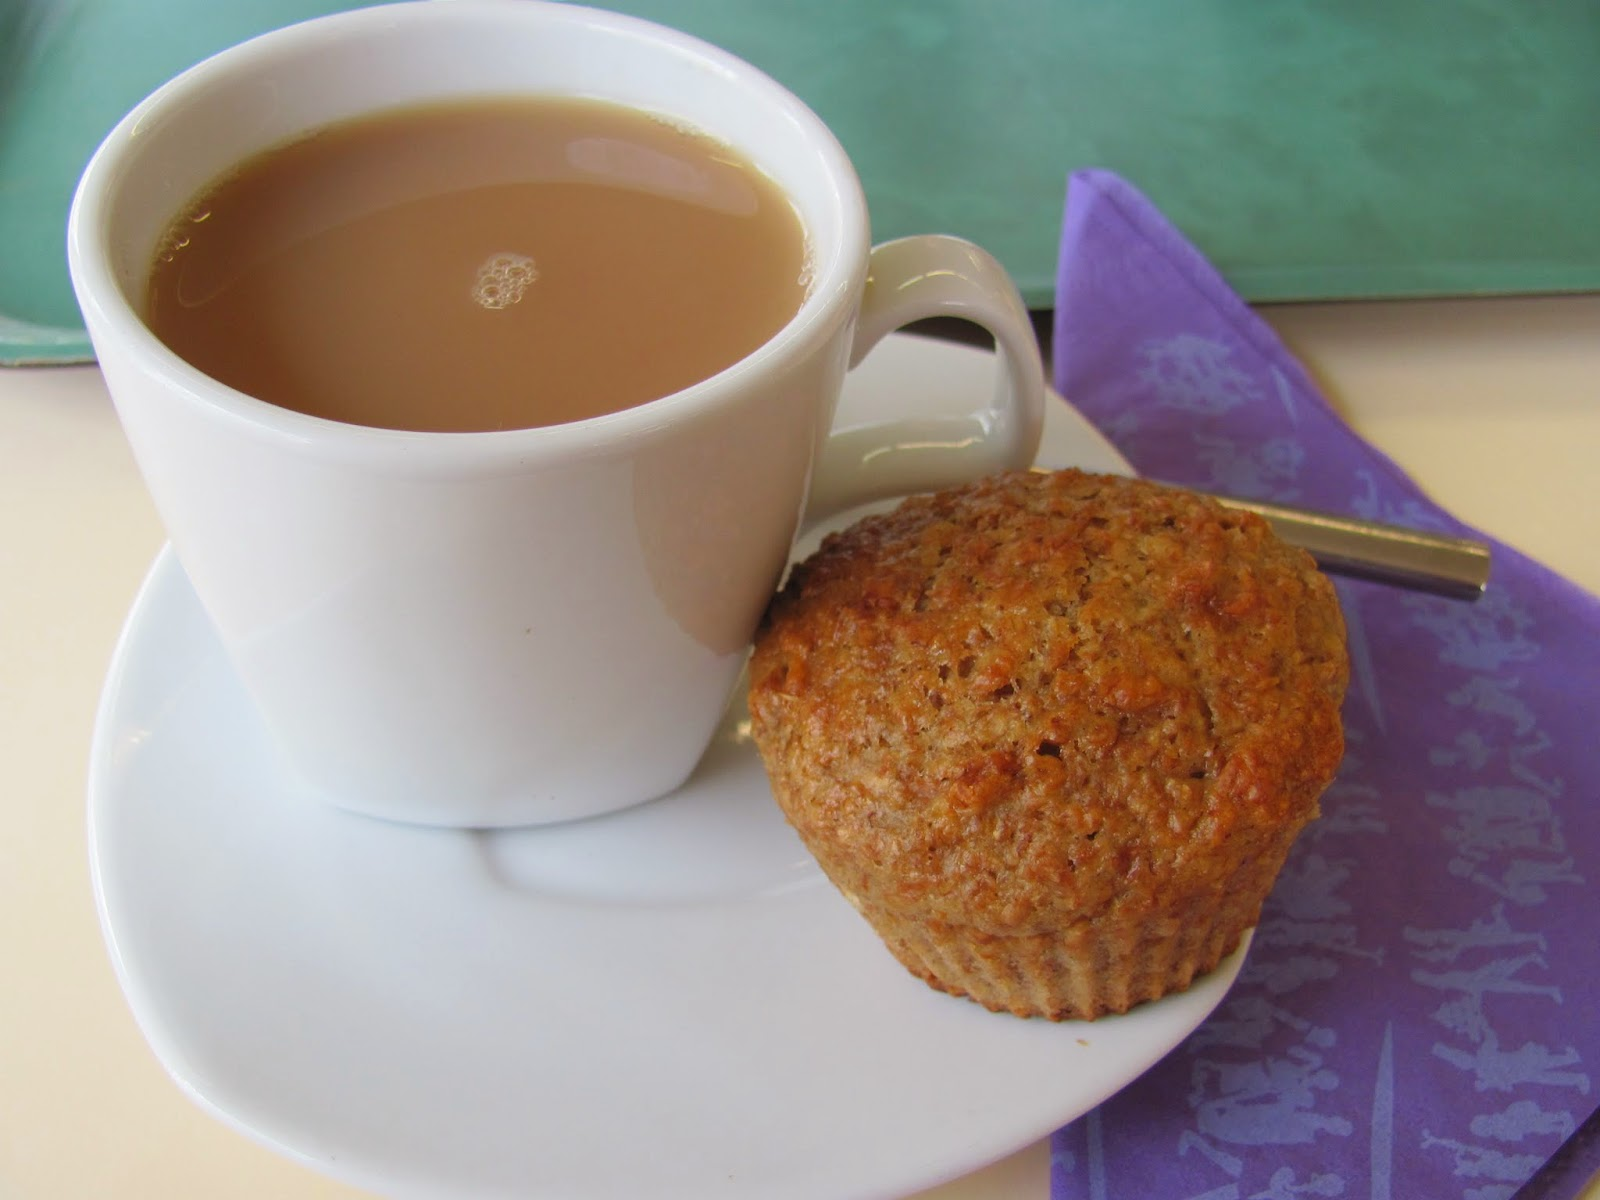 Tea and Smuggled Bran Muffin